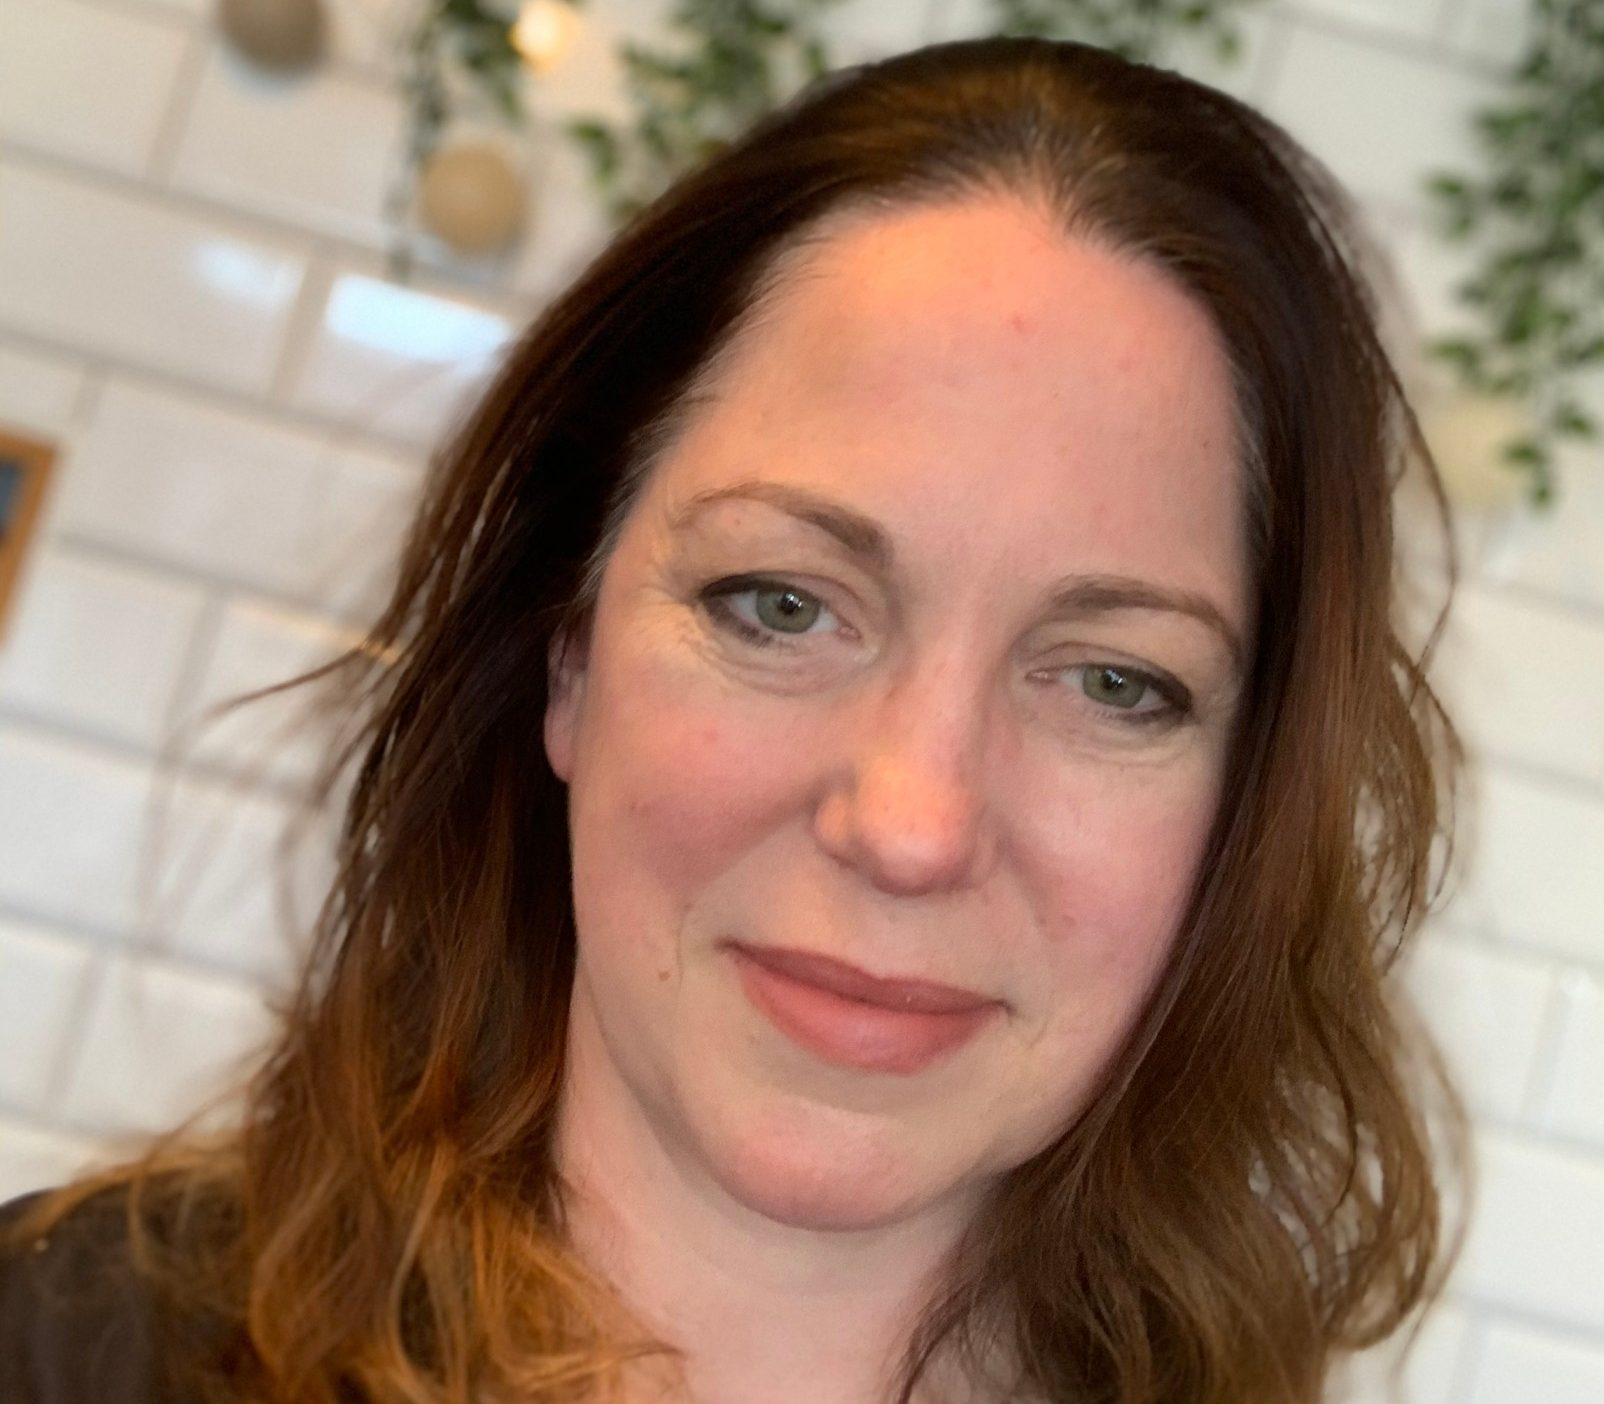 Women Of The Irish Food Industry – Sarah Caldwell, Cafe Owner